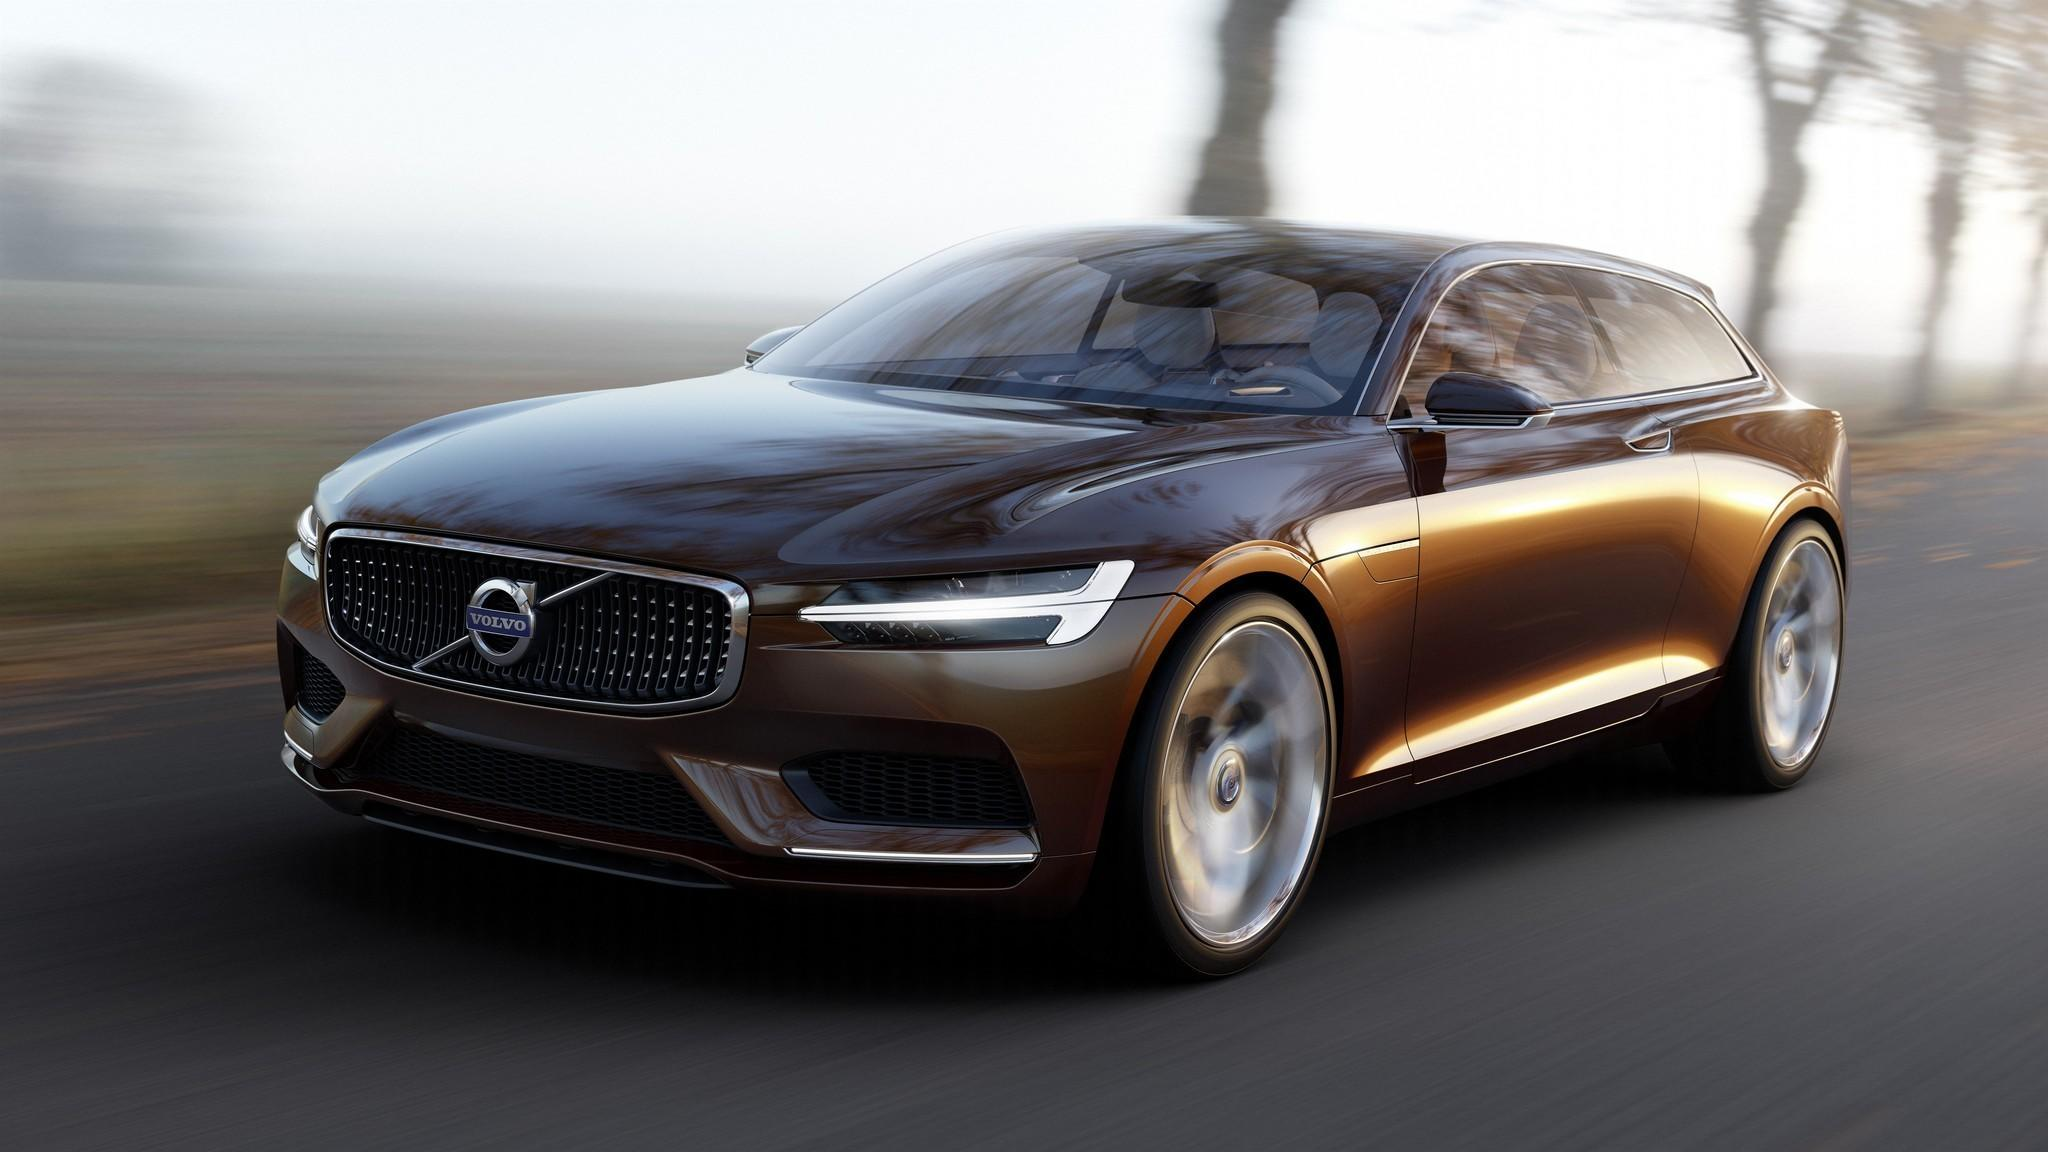 Geneva Motor Show: Volvo teases future with stunning Concept Estate ...